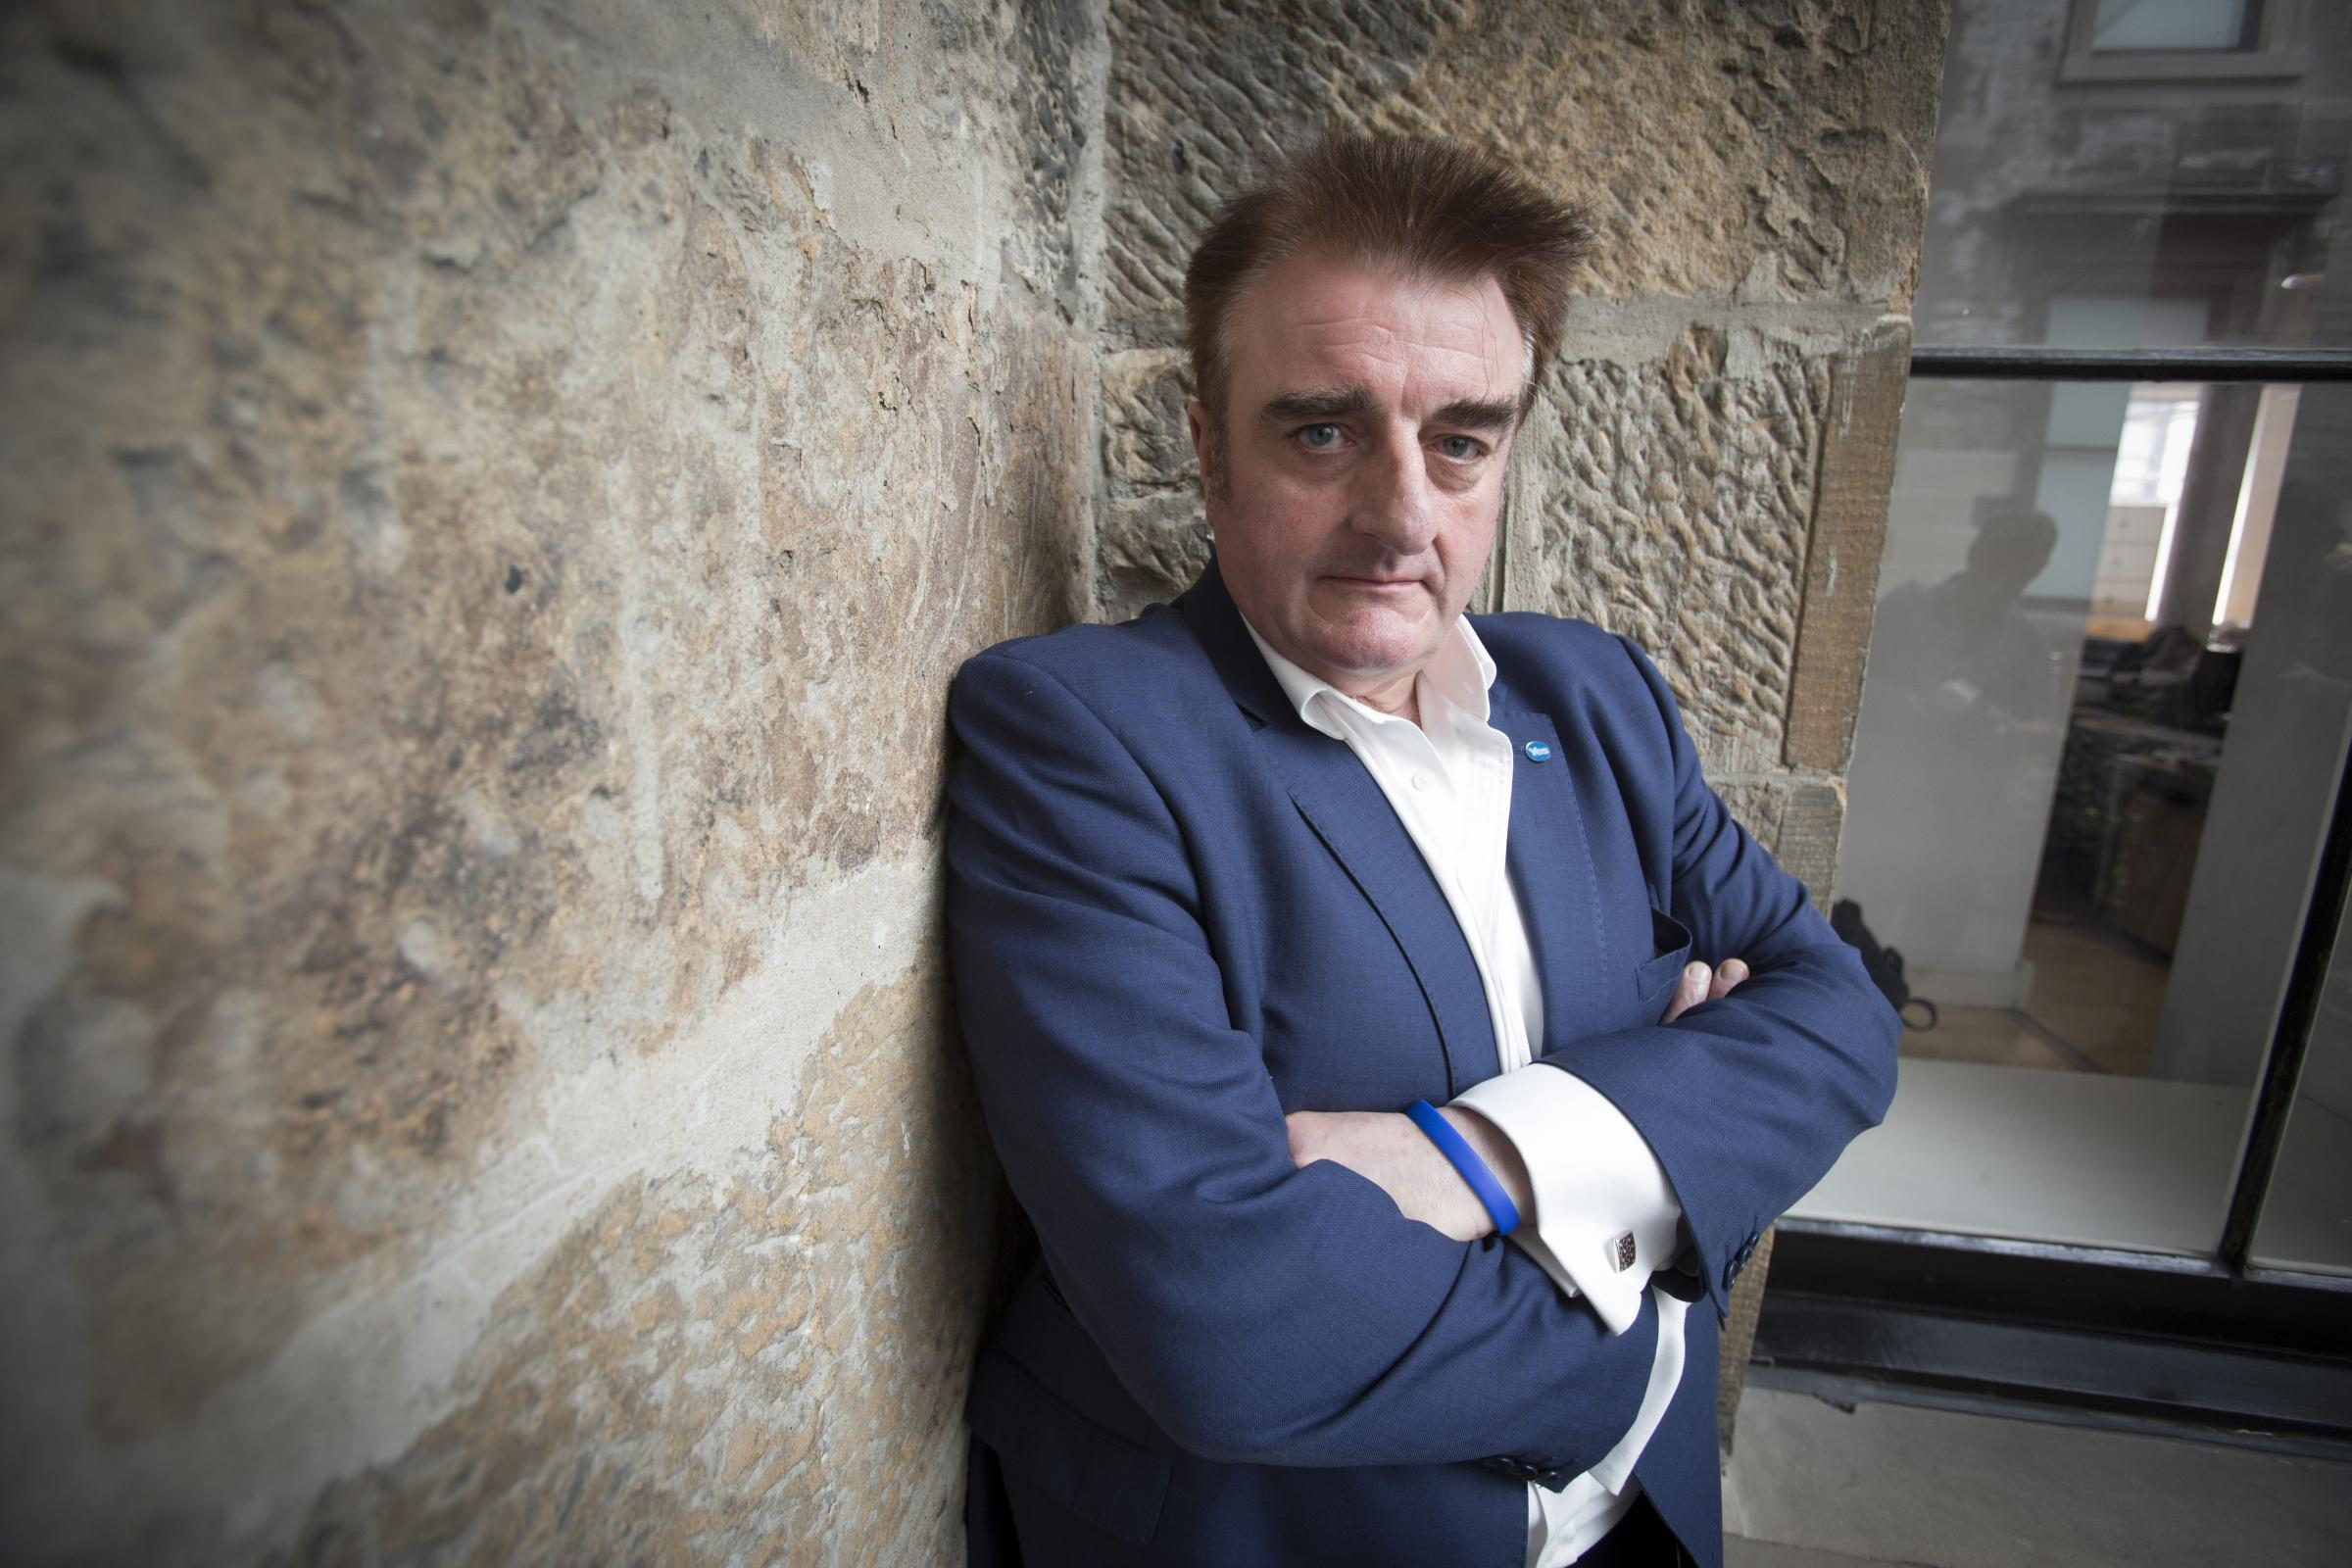 Tommy Sheppard suggested that Labour's Ian Murray could lose his Edinburgh seat